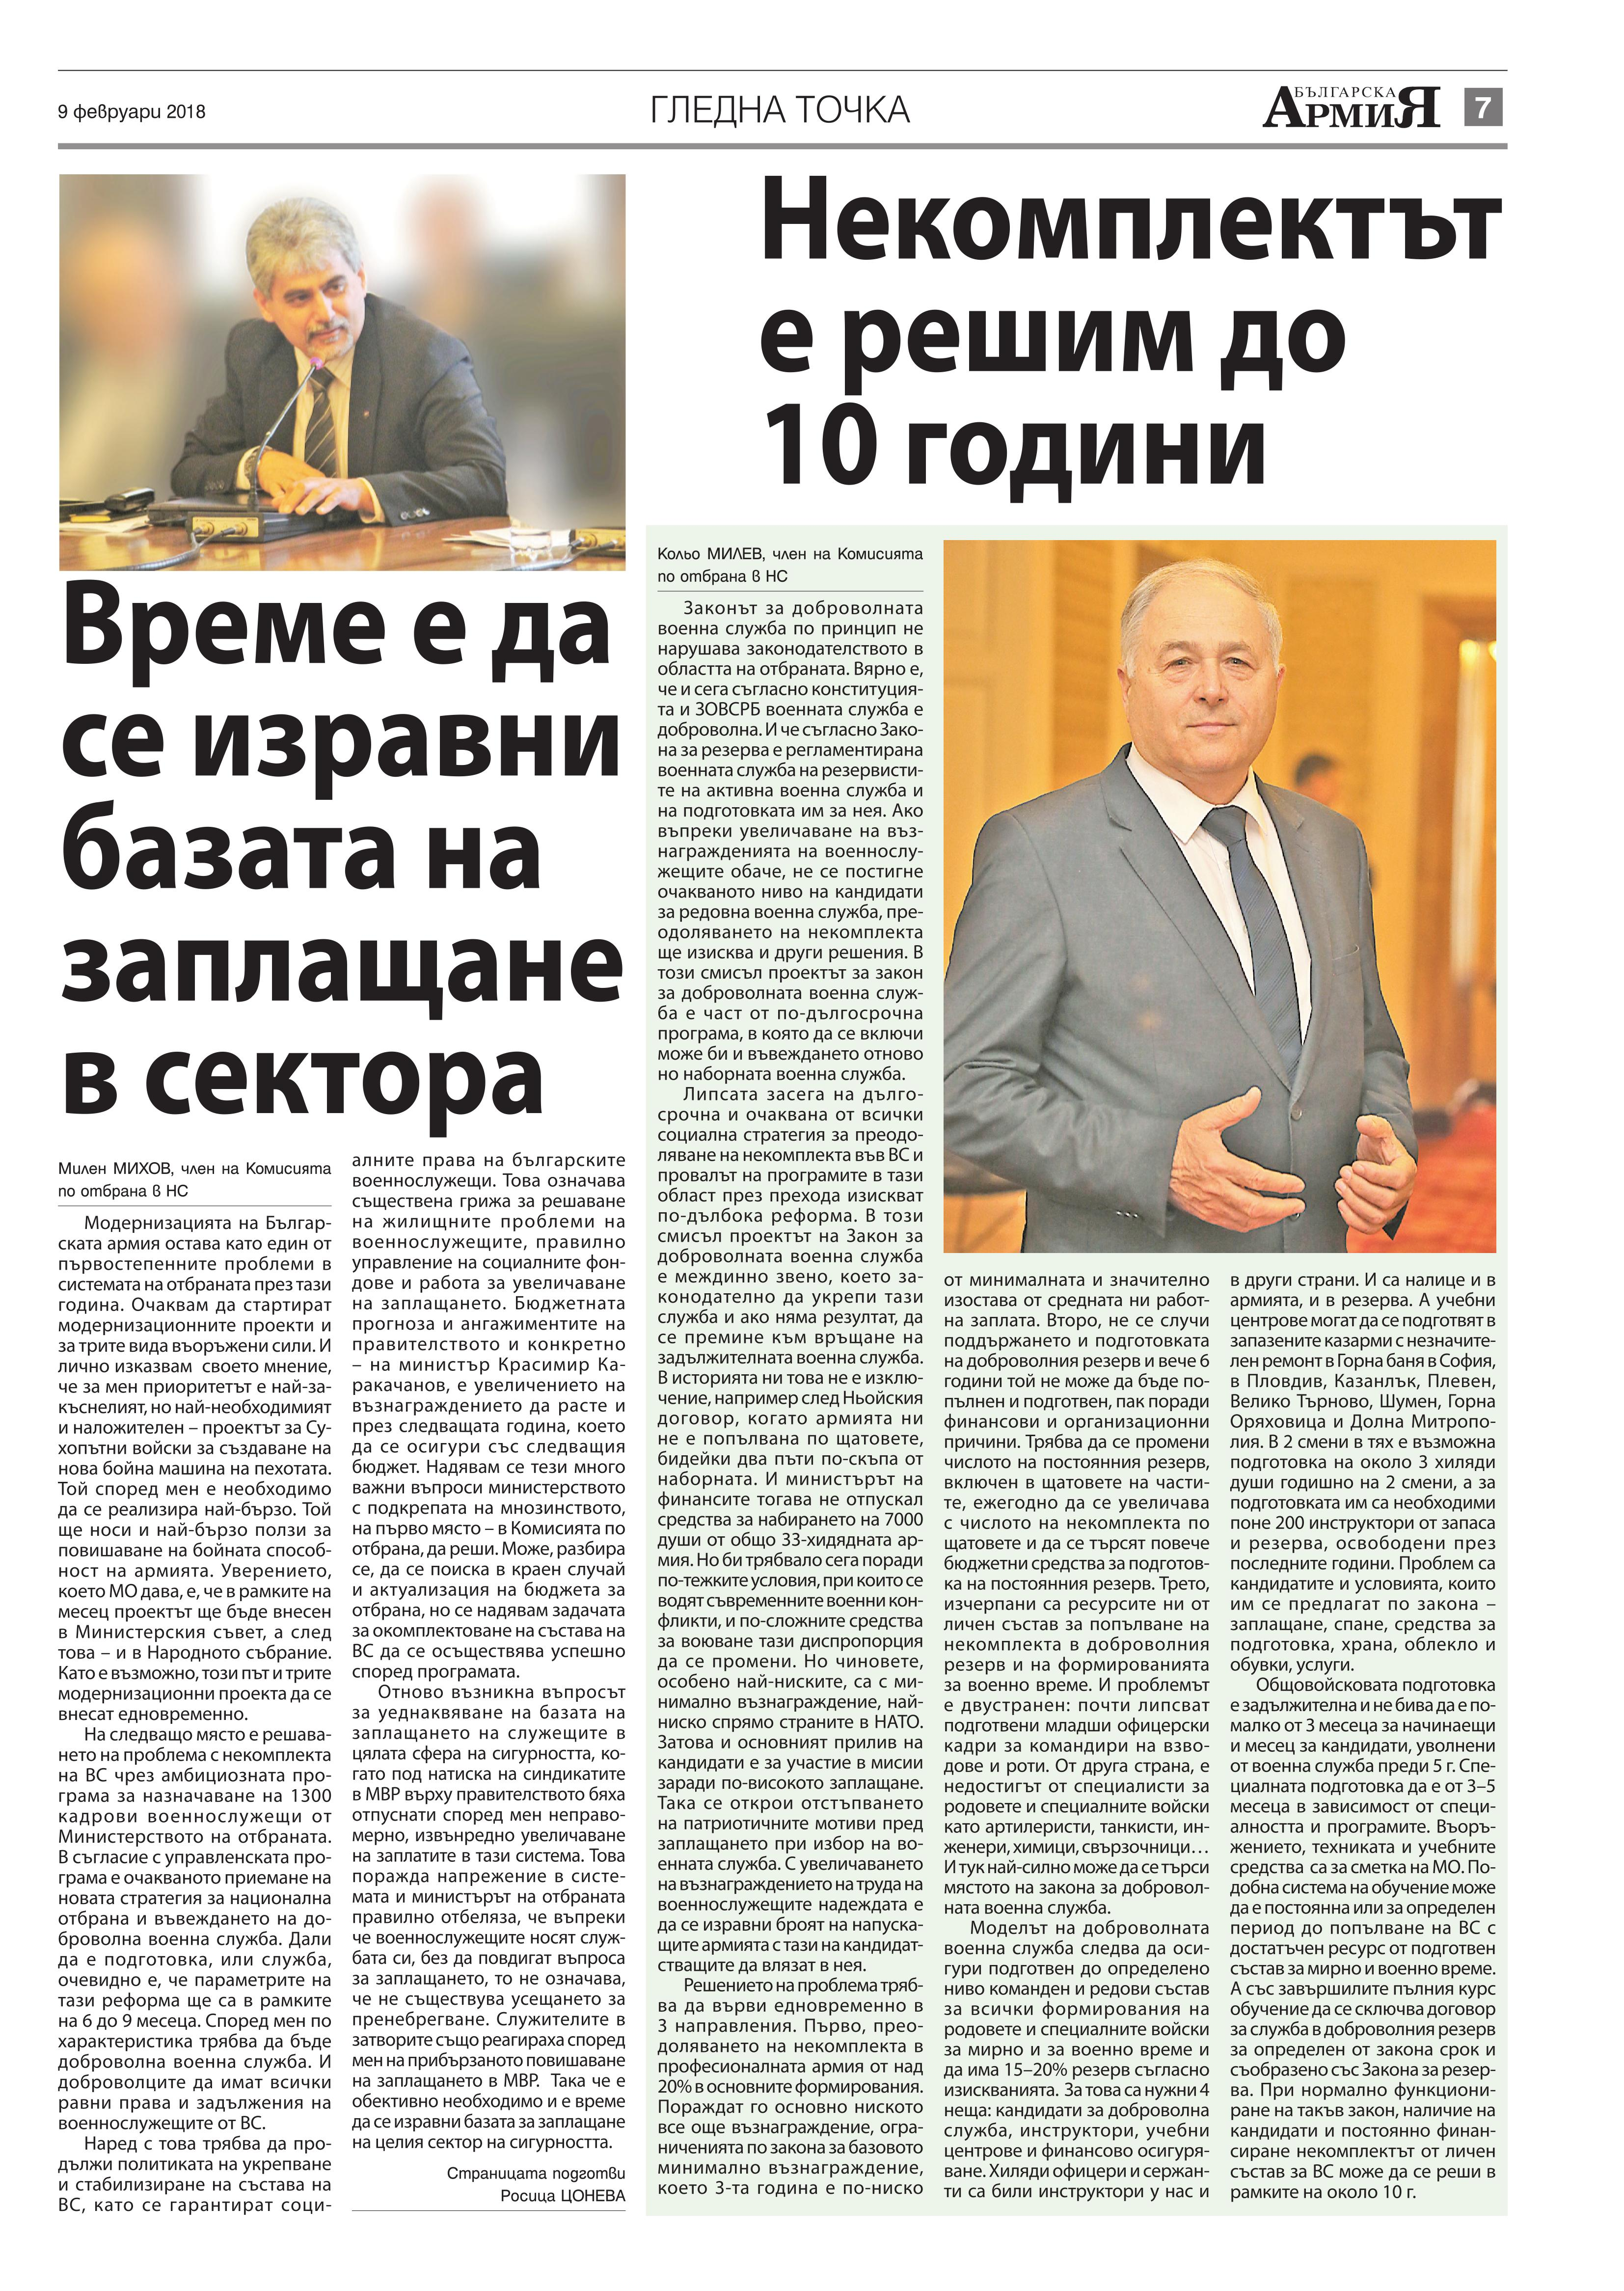 https://armymedia.bg/wp-content/uploads/2015/06/07.page1_-37.jpg